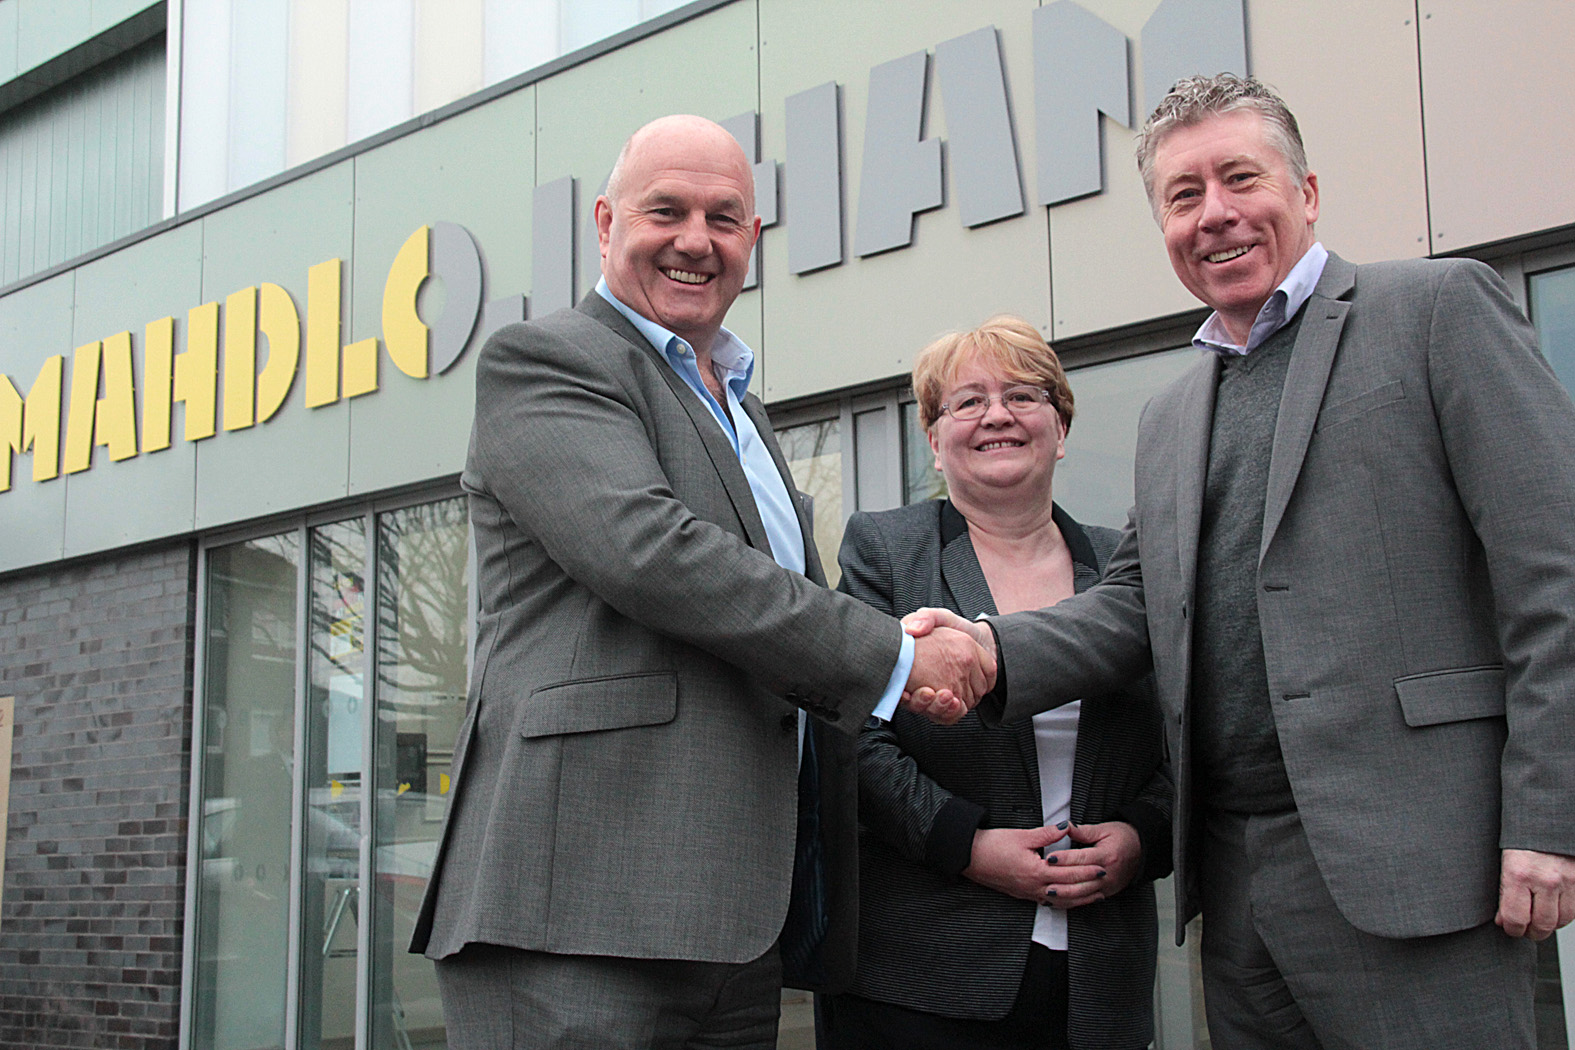 """Heathcote1"" – Celebrity chef Paul Heathcote (pictured right) with Terry Flanagan (Chair of the Board for Mahdlo) and Councillor Jean Stretton (Oldham Council Deputy Leader) at the latest Business Network Breakfast at Mahdlo in Oldham."